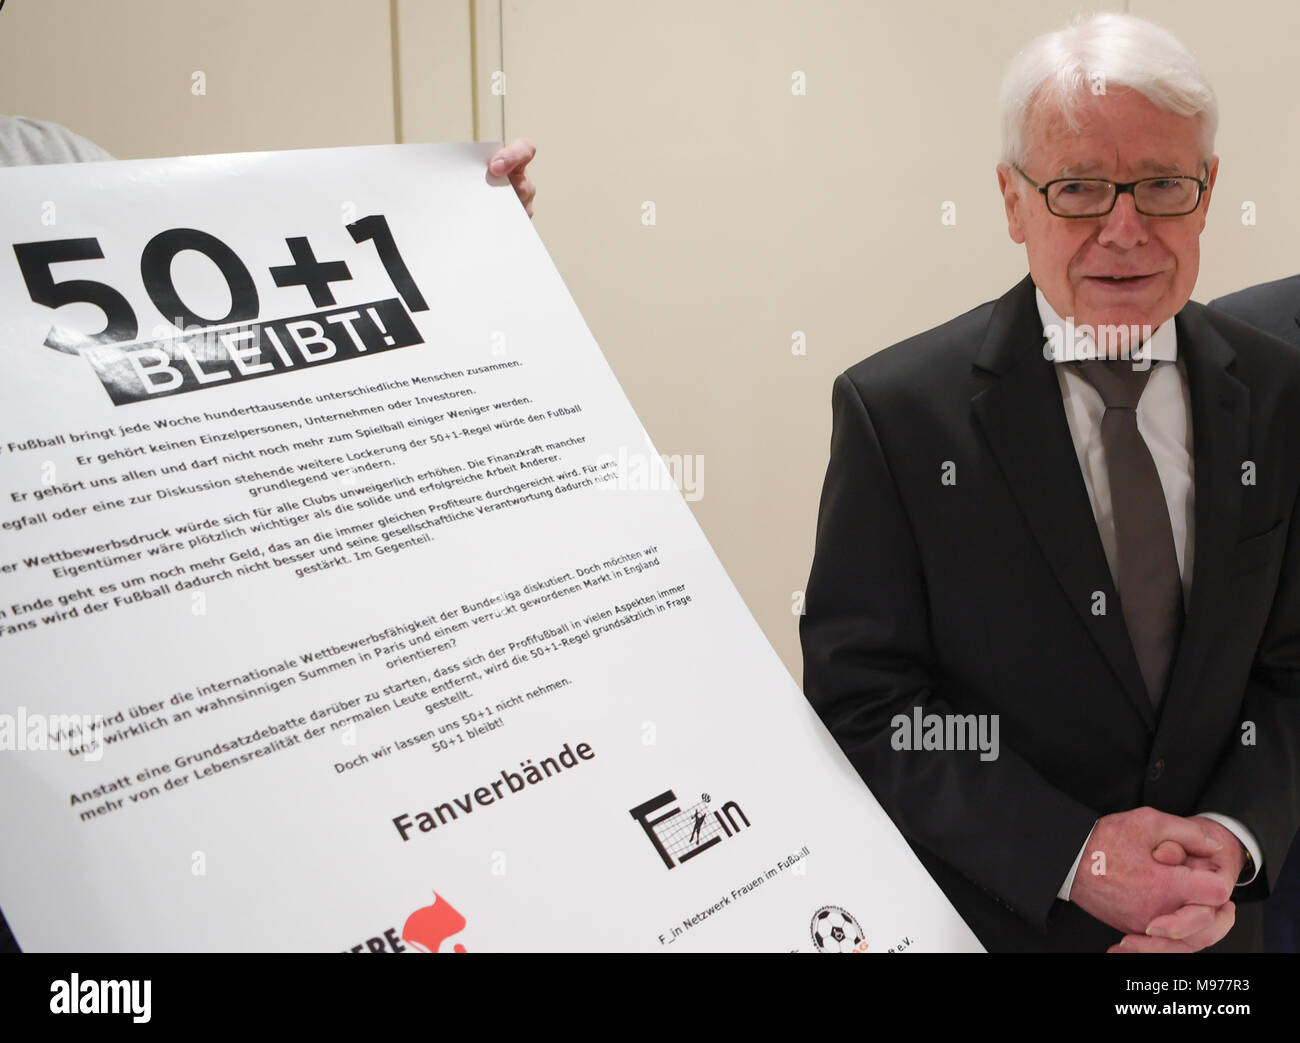 22 March 2018, Germany, Frankfurt/Main: Reinhard Rauball, President of the German Soccer League (DFL), attends a members' assembly to present the 50+1 rule. Photo: Arne Dedert/dpa - Stock Image